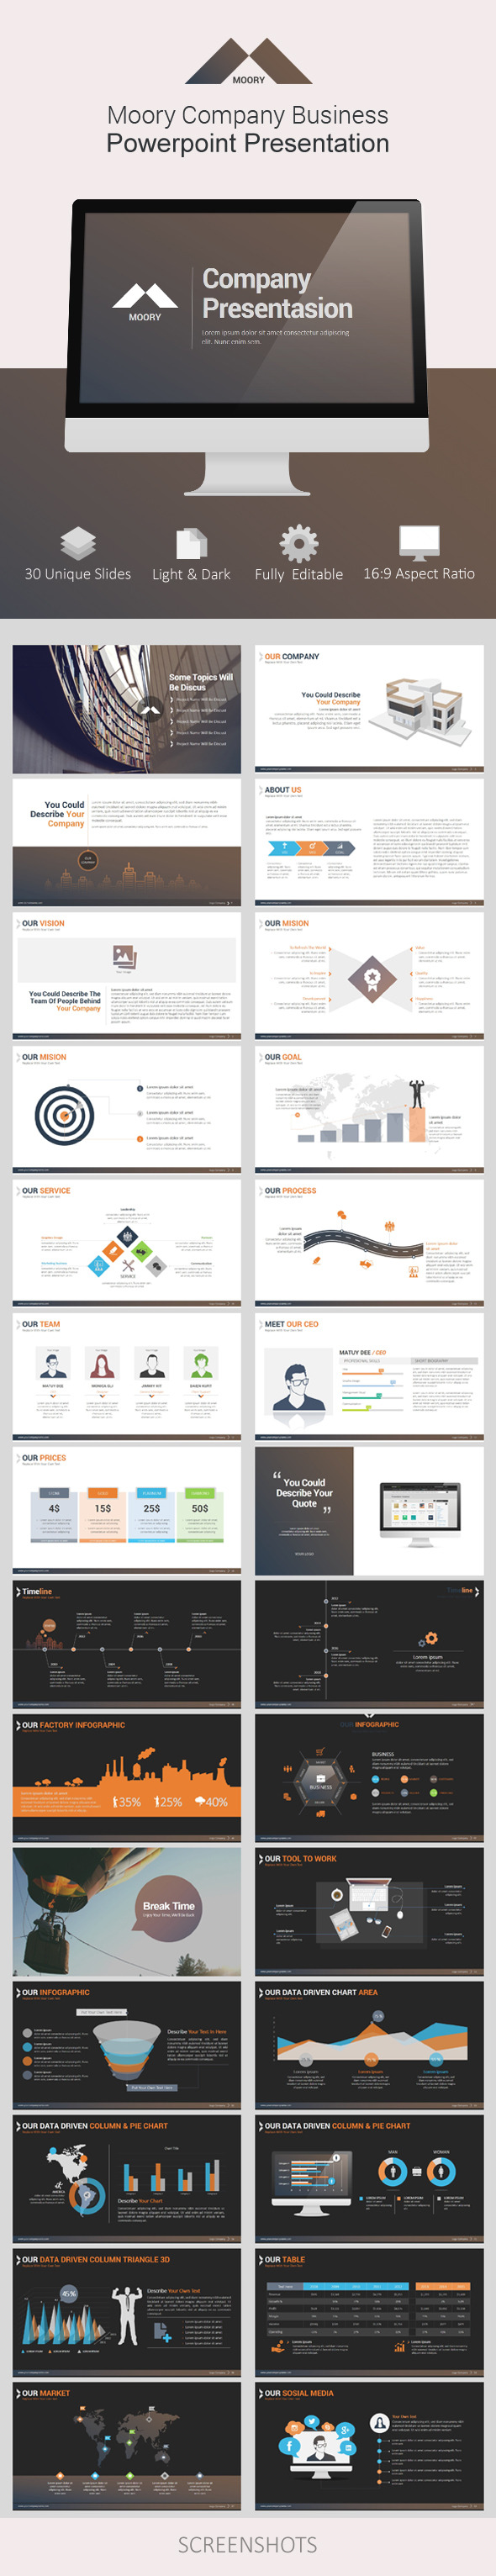 GraphicRiver Moory Company Powerpoint Presentation 9323489